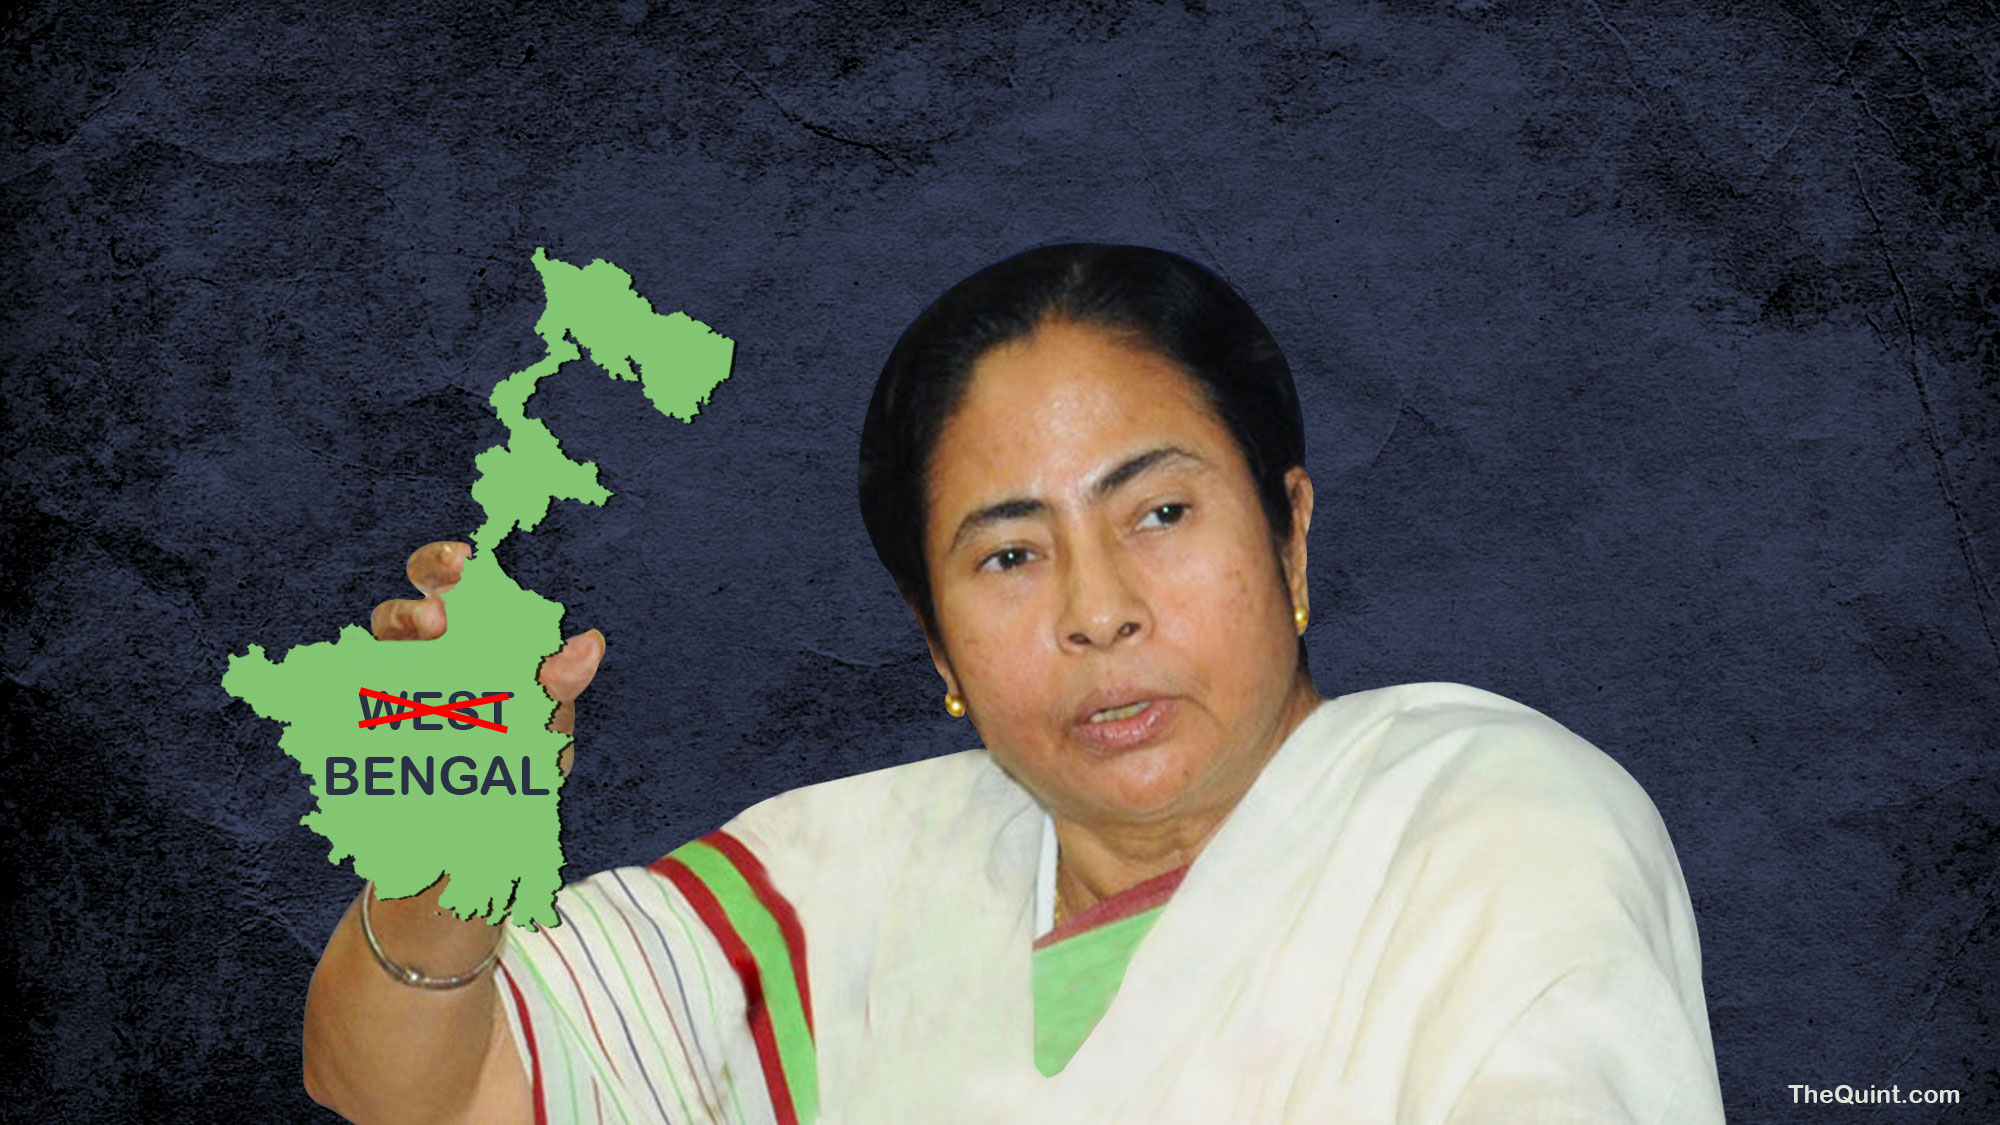 Rename West Bengal